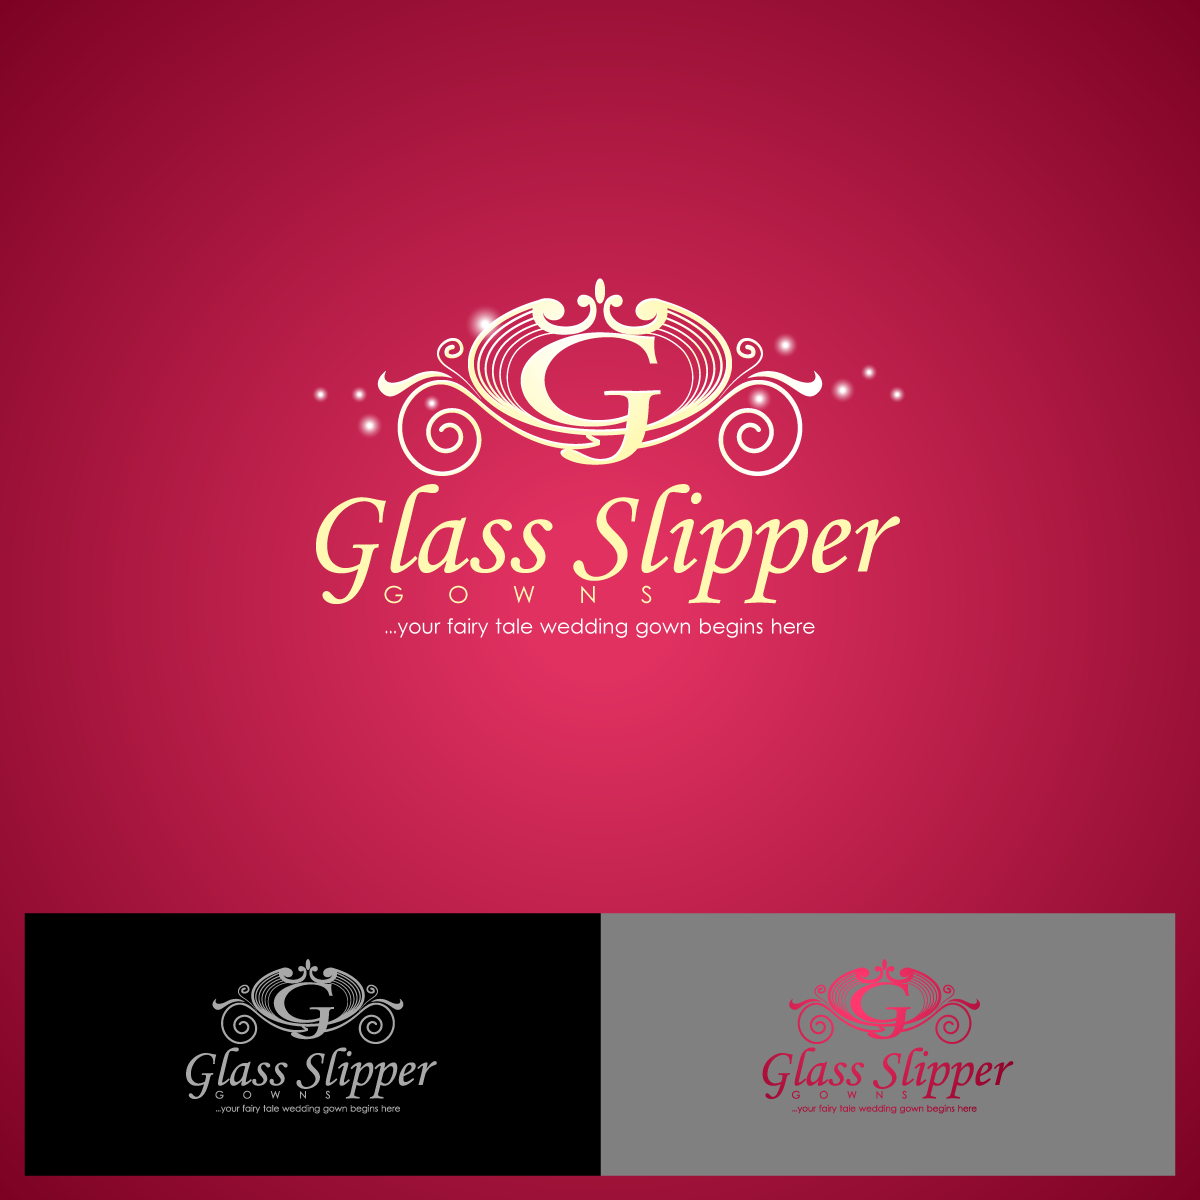 Logo Design by zesthar - Entry No. 75 in the Logo Design Contest New Logo Design for Glass Slipper Gowns.